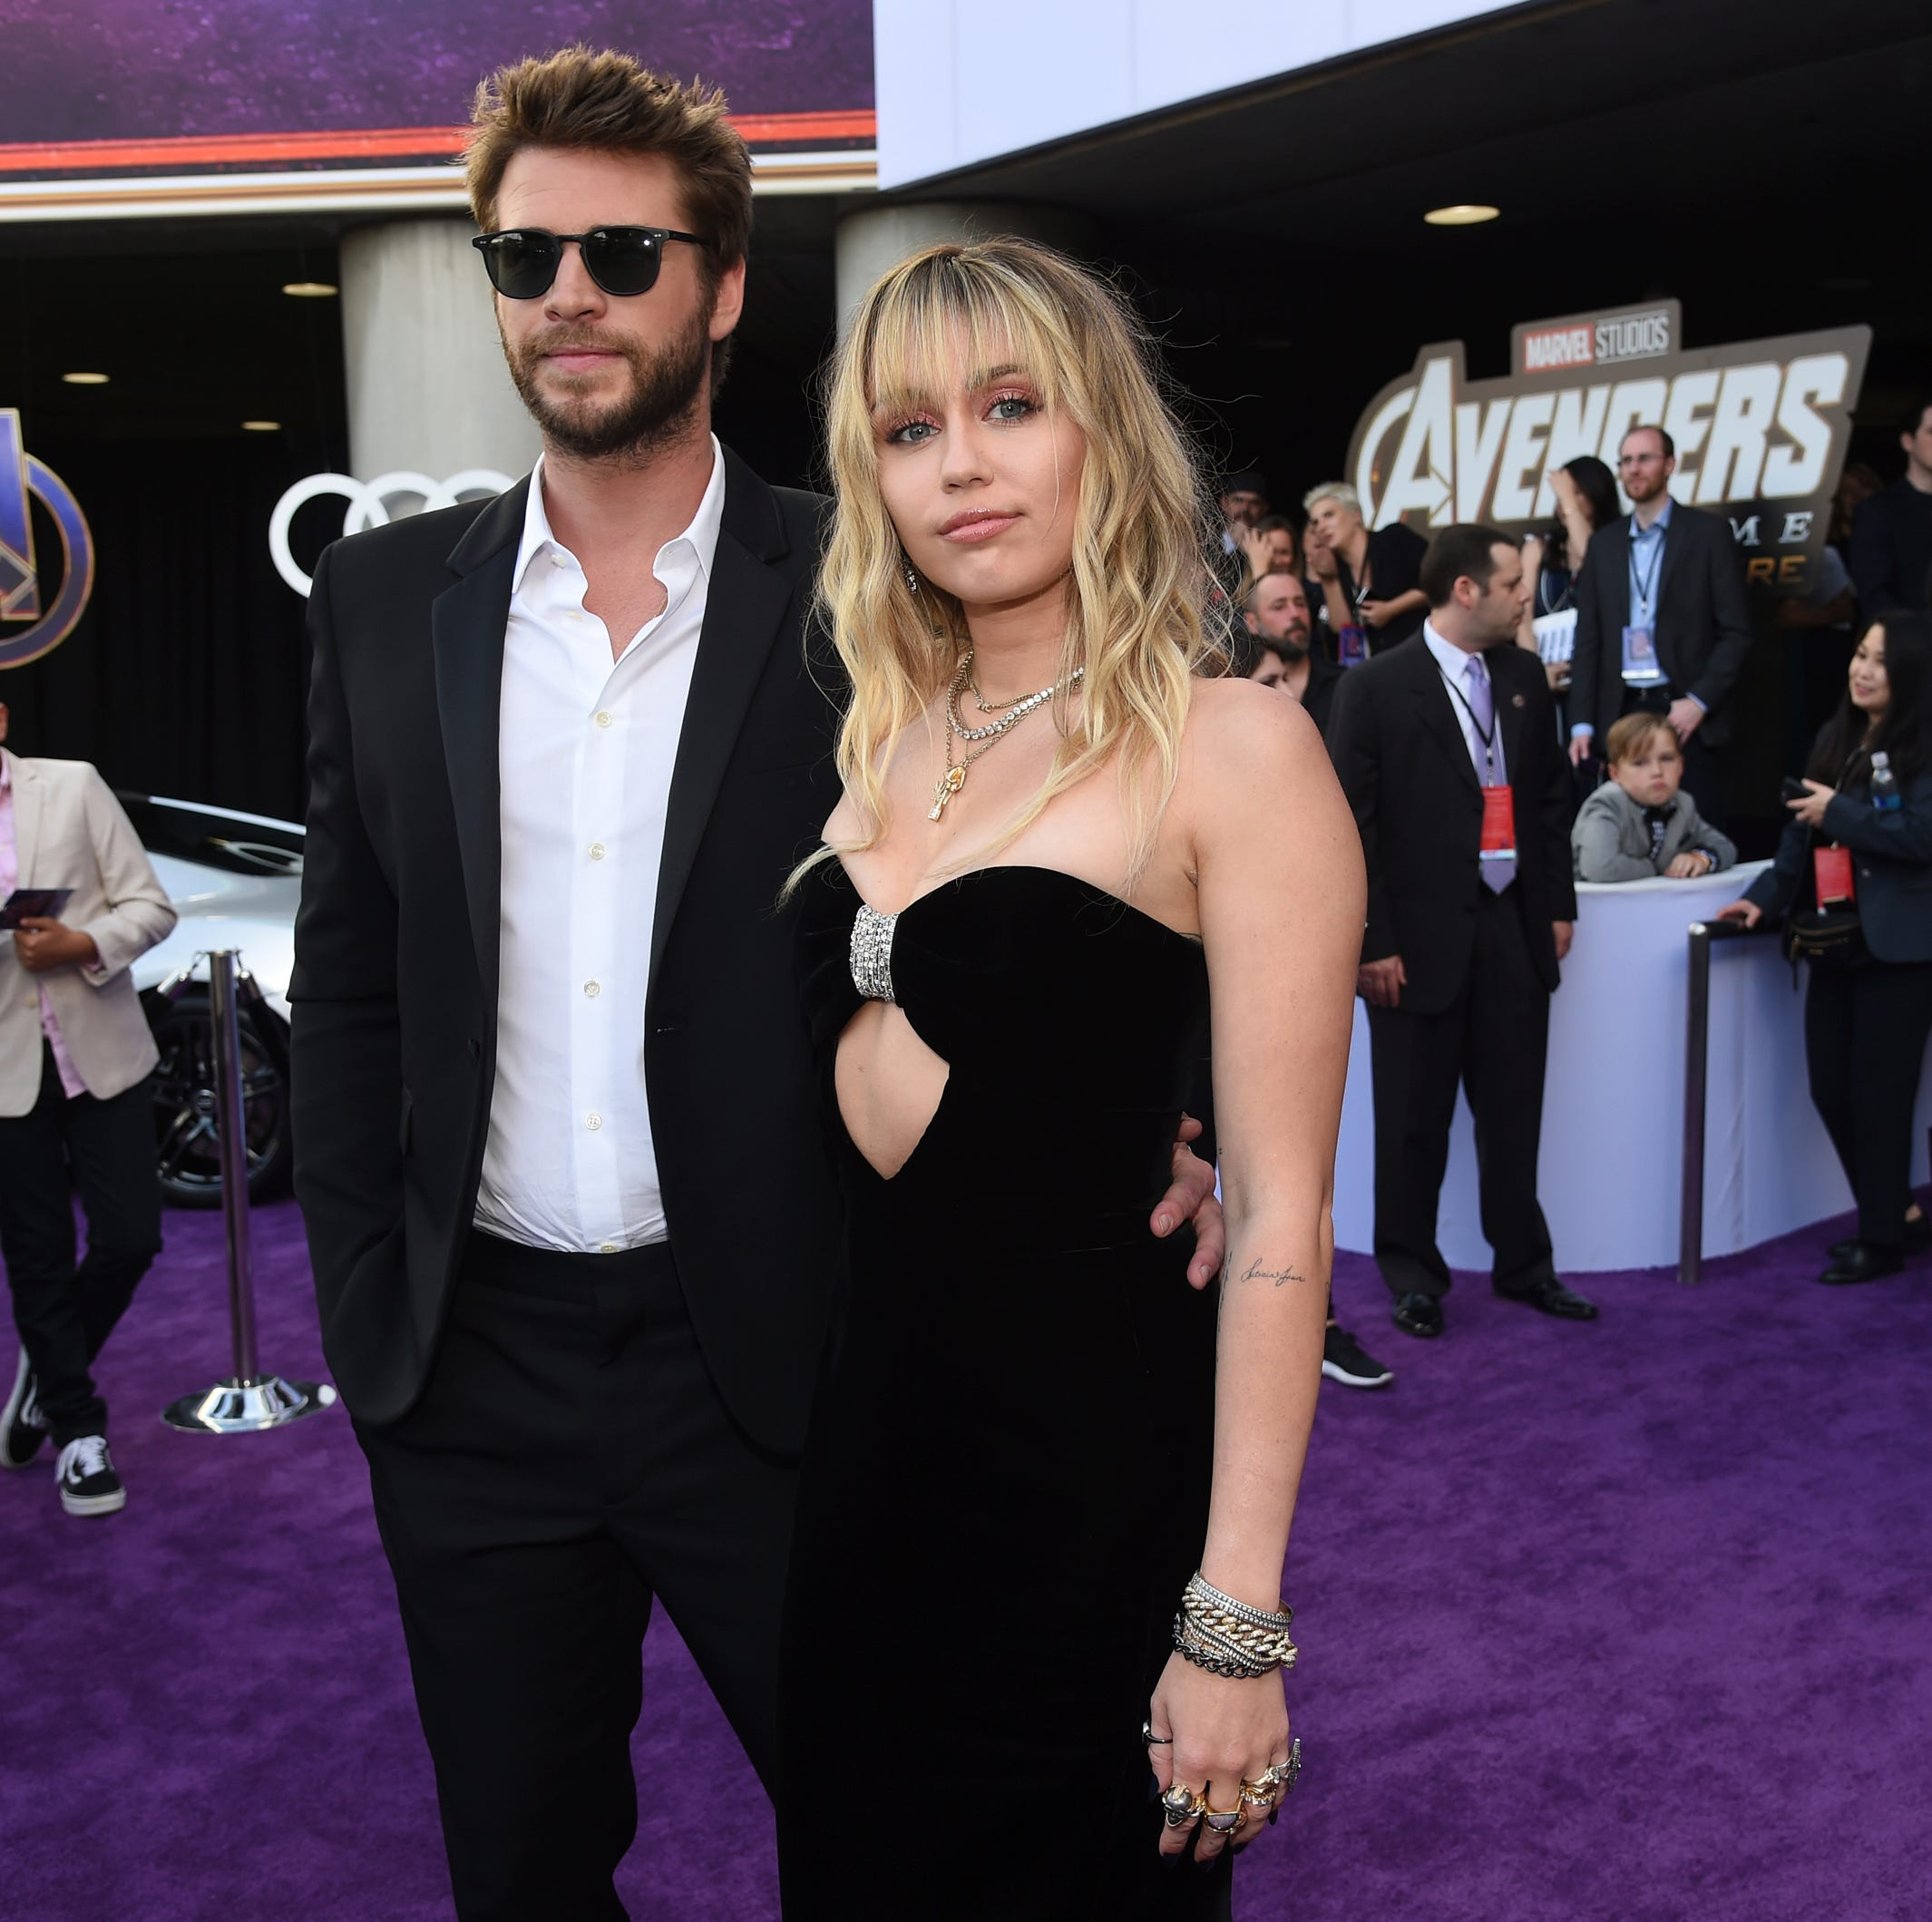 "Liam Hemsworth, left, and Miley Cyrus arrive at the premiere of ""Avengers: Endgame"" at the Los Angeles Convention Center on Monday, April 22, 2019. (Photo by Chris Pizzello/Invision/AP) ORG XMIT: CADC181"